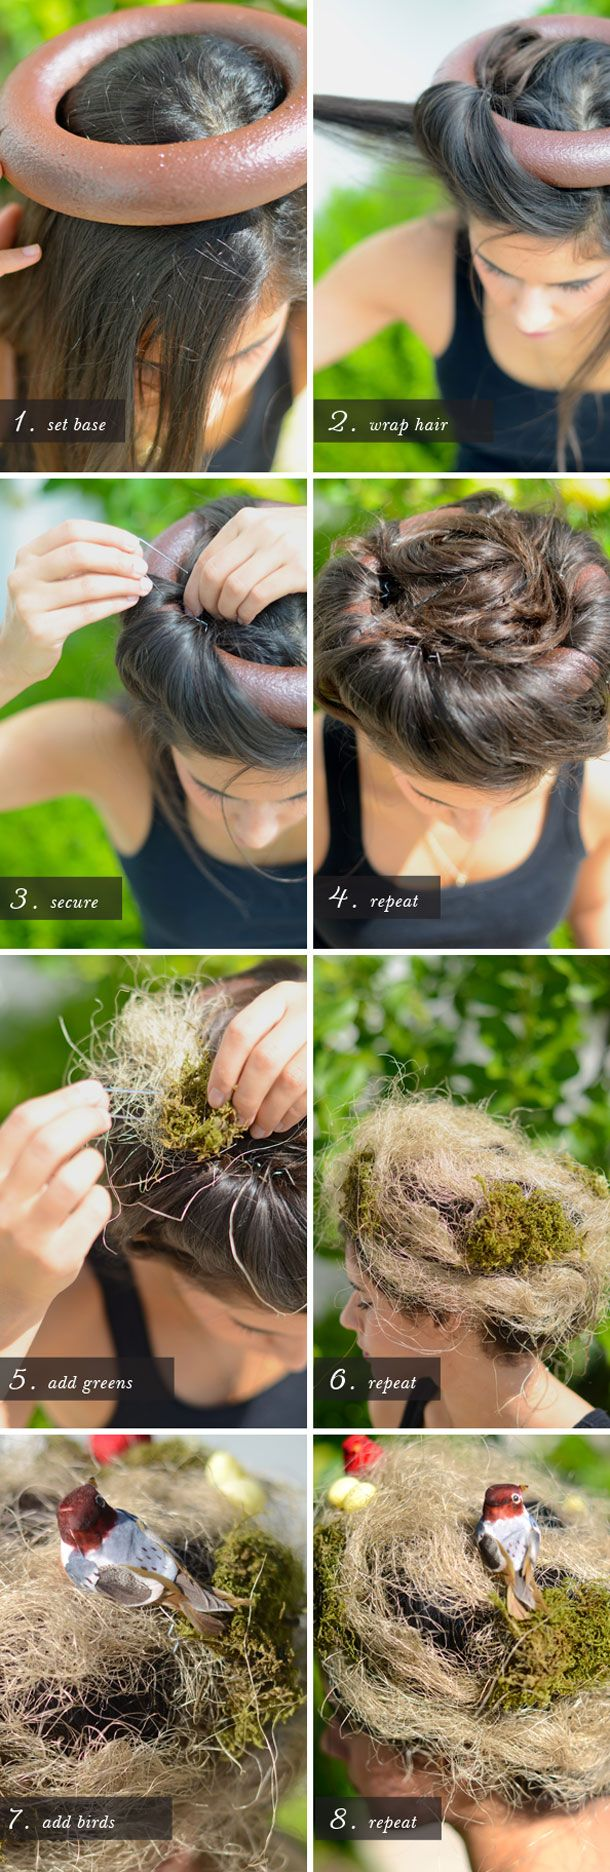 How to make birds nest hair for Halloween | Camille Styles